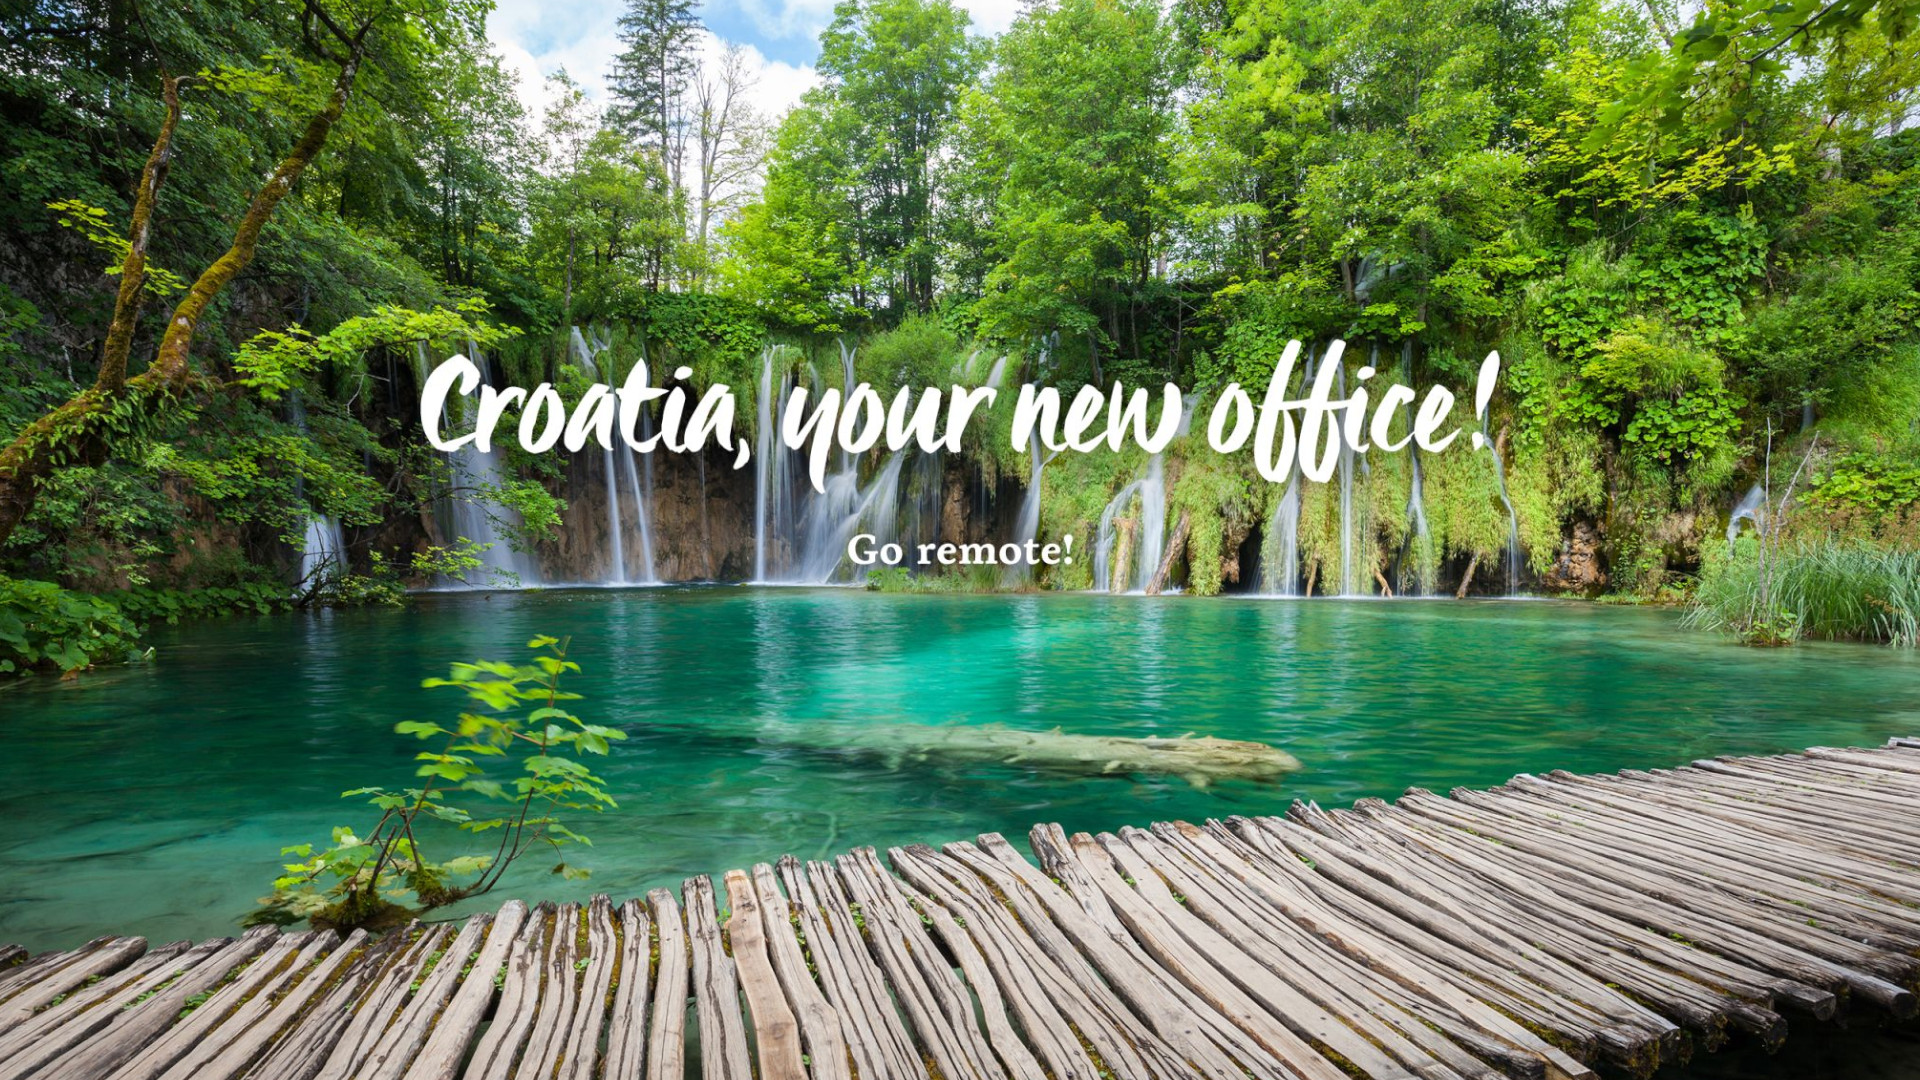 Croatia, Your New Office - Remote Work Campaign for Digital Nomads